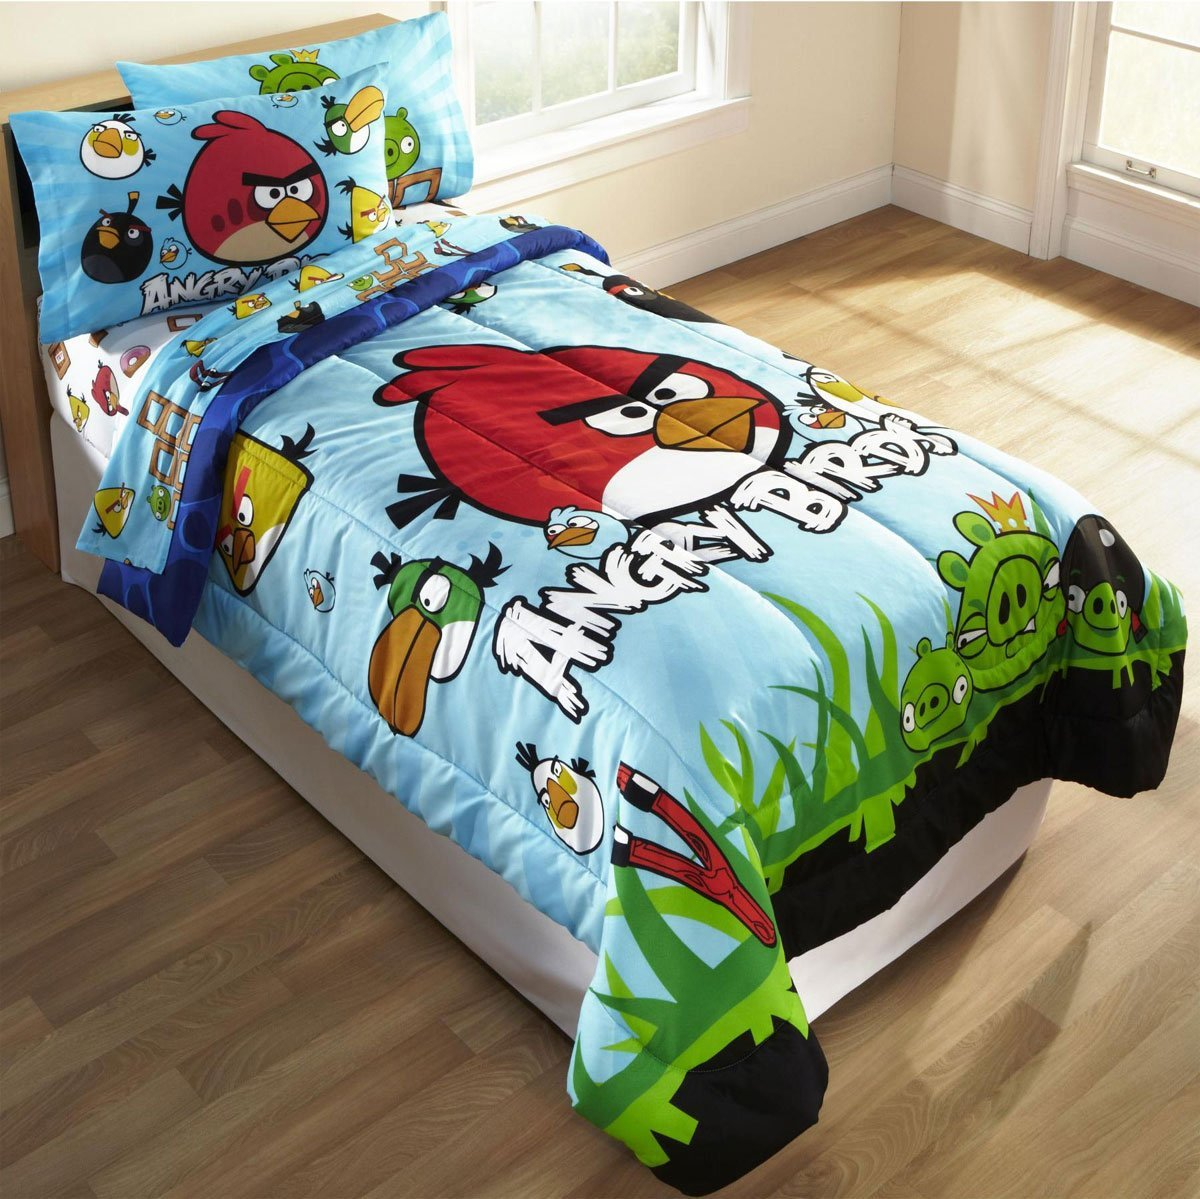 Online Sofa Cover Material 2 Piece Slipcover T Cushion Home Furniture Shop And Sale: Angry Birds Twin ...